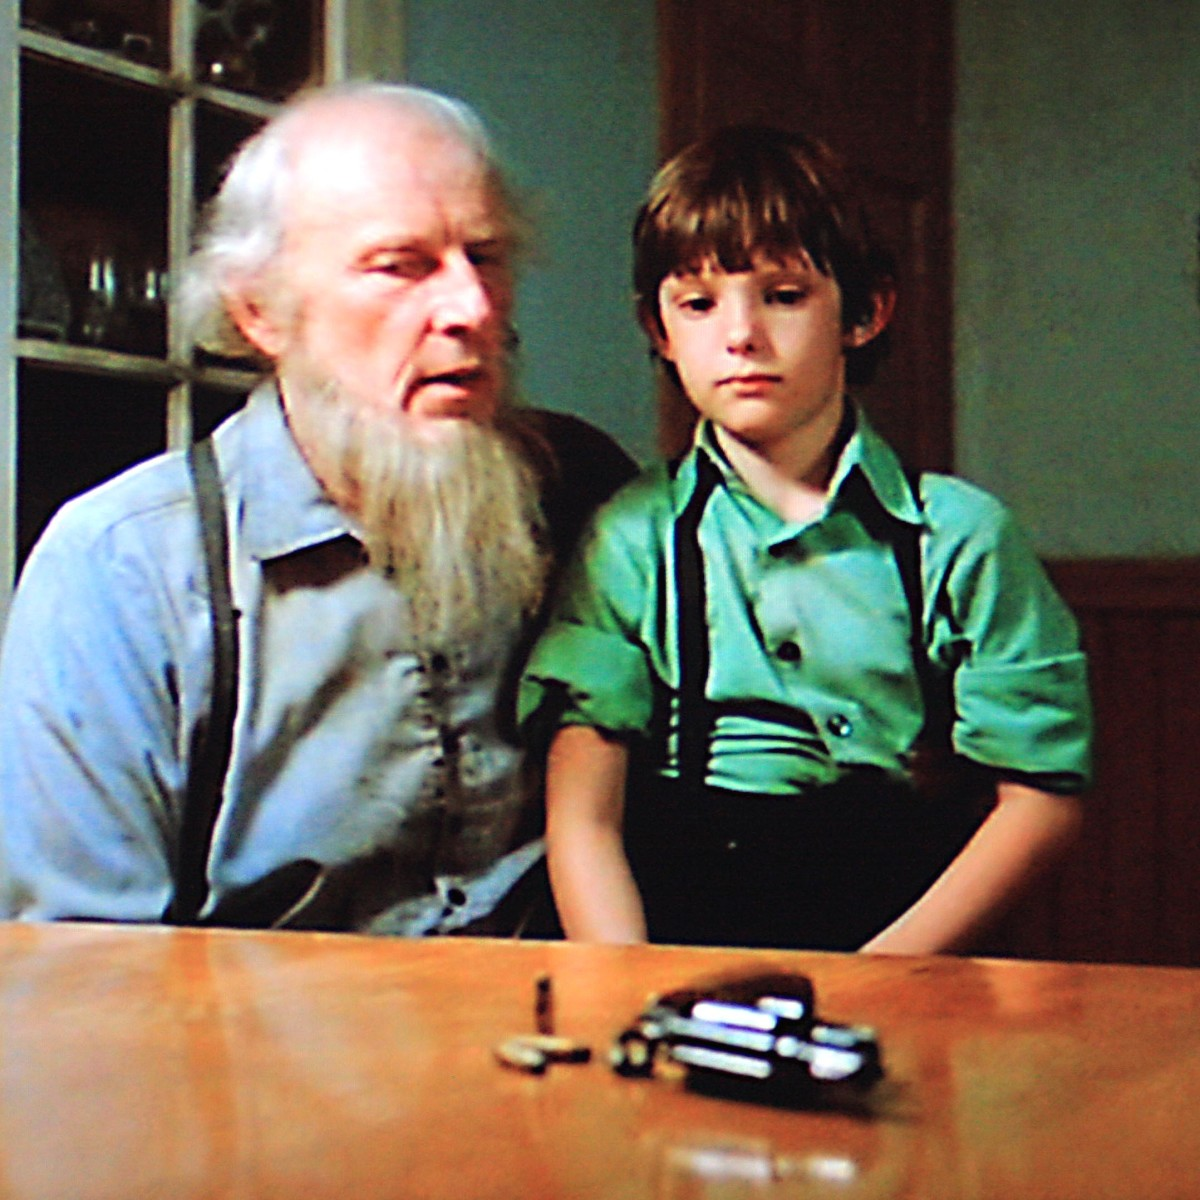 Many sequences in the movie highlight the deep conflict between Amish life and John Book's life. Here, Eli Lapp lectures Samuel on the Amish abhorrence of hand guns